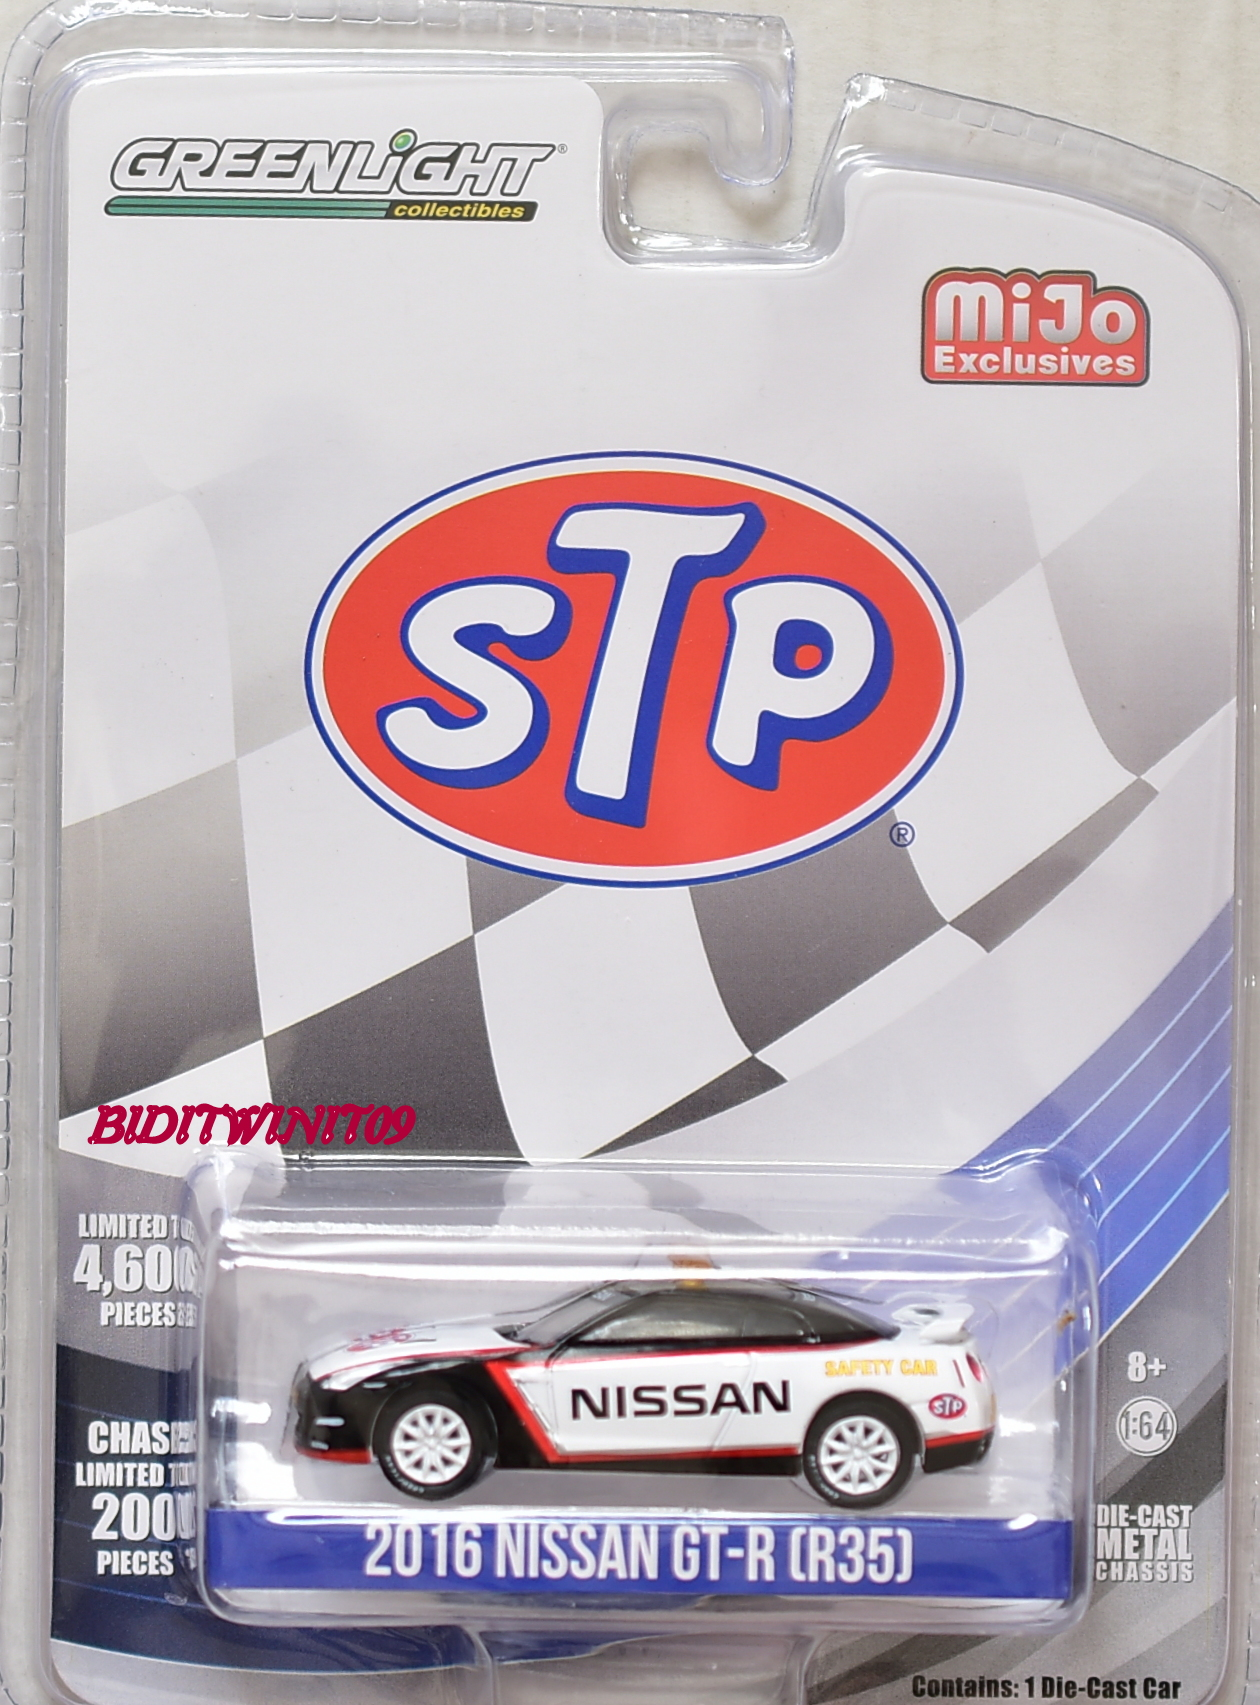 GREENLIGHT 2018 COLLECTIBLES MIJO EXCLUSIVE STP 2016 NISSAN GT-R (R35)